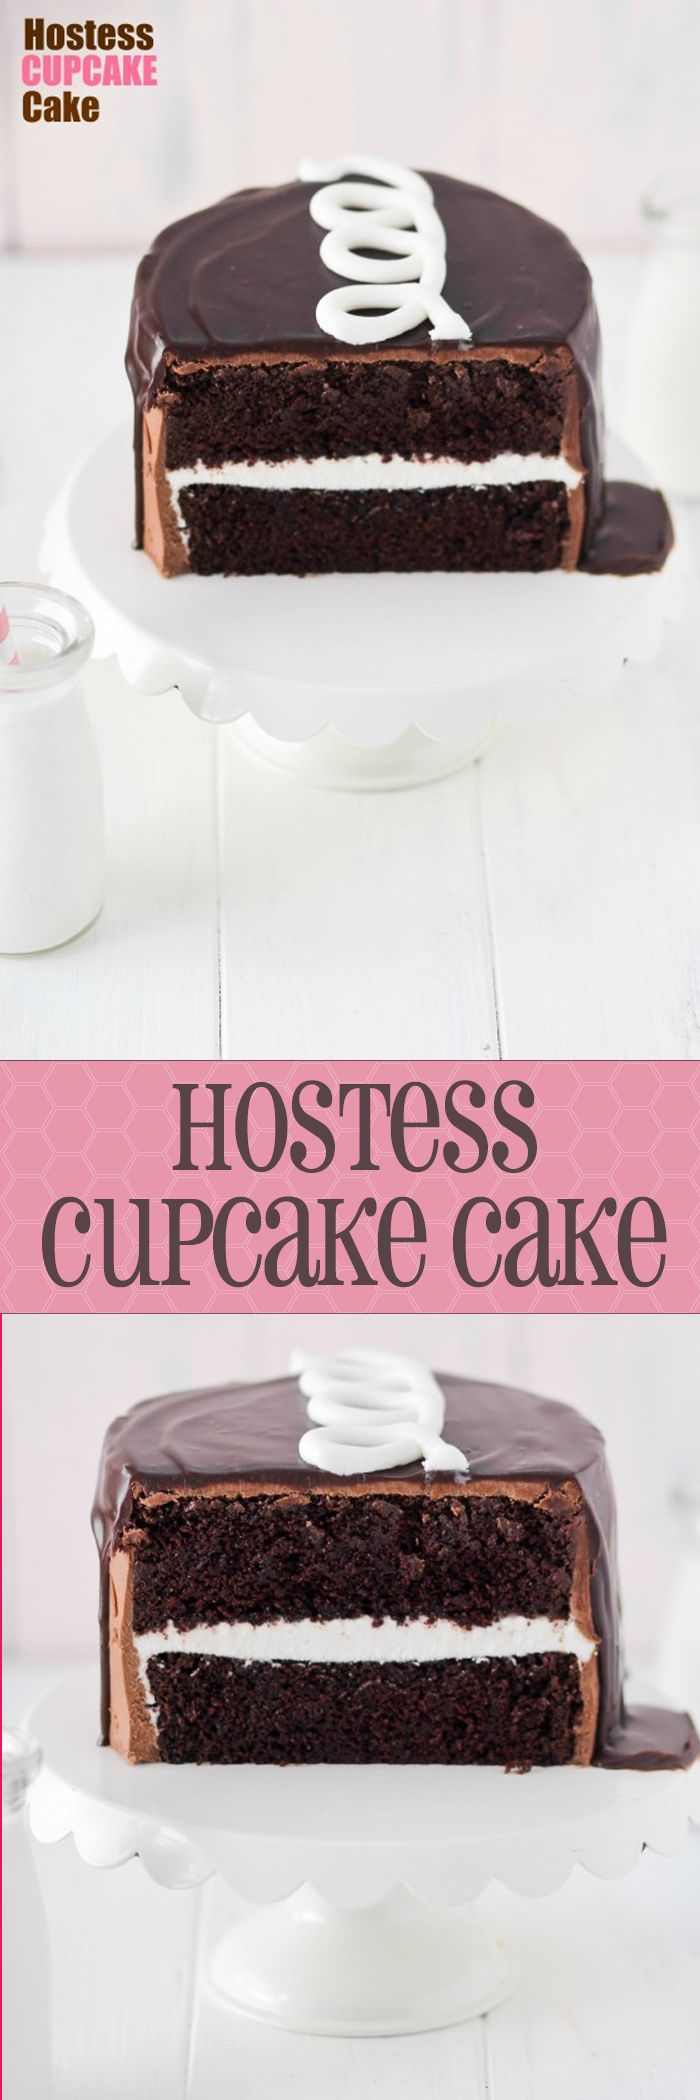 HOSTESS CUPCAKE CAKE!! My favorite snack has been turned into a cake! Love the adorable swirl on top.